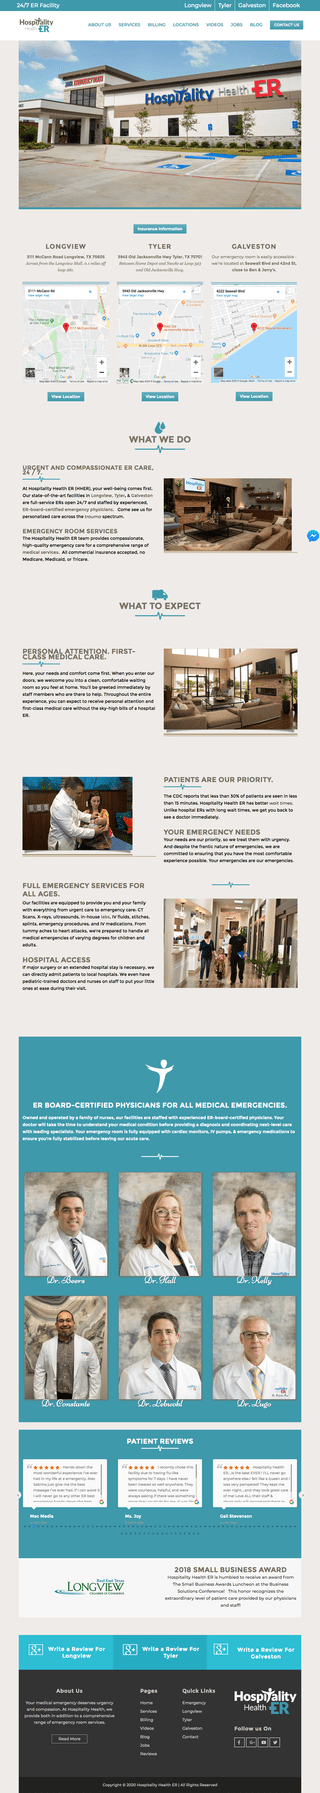 Emergency Room Website Design